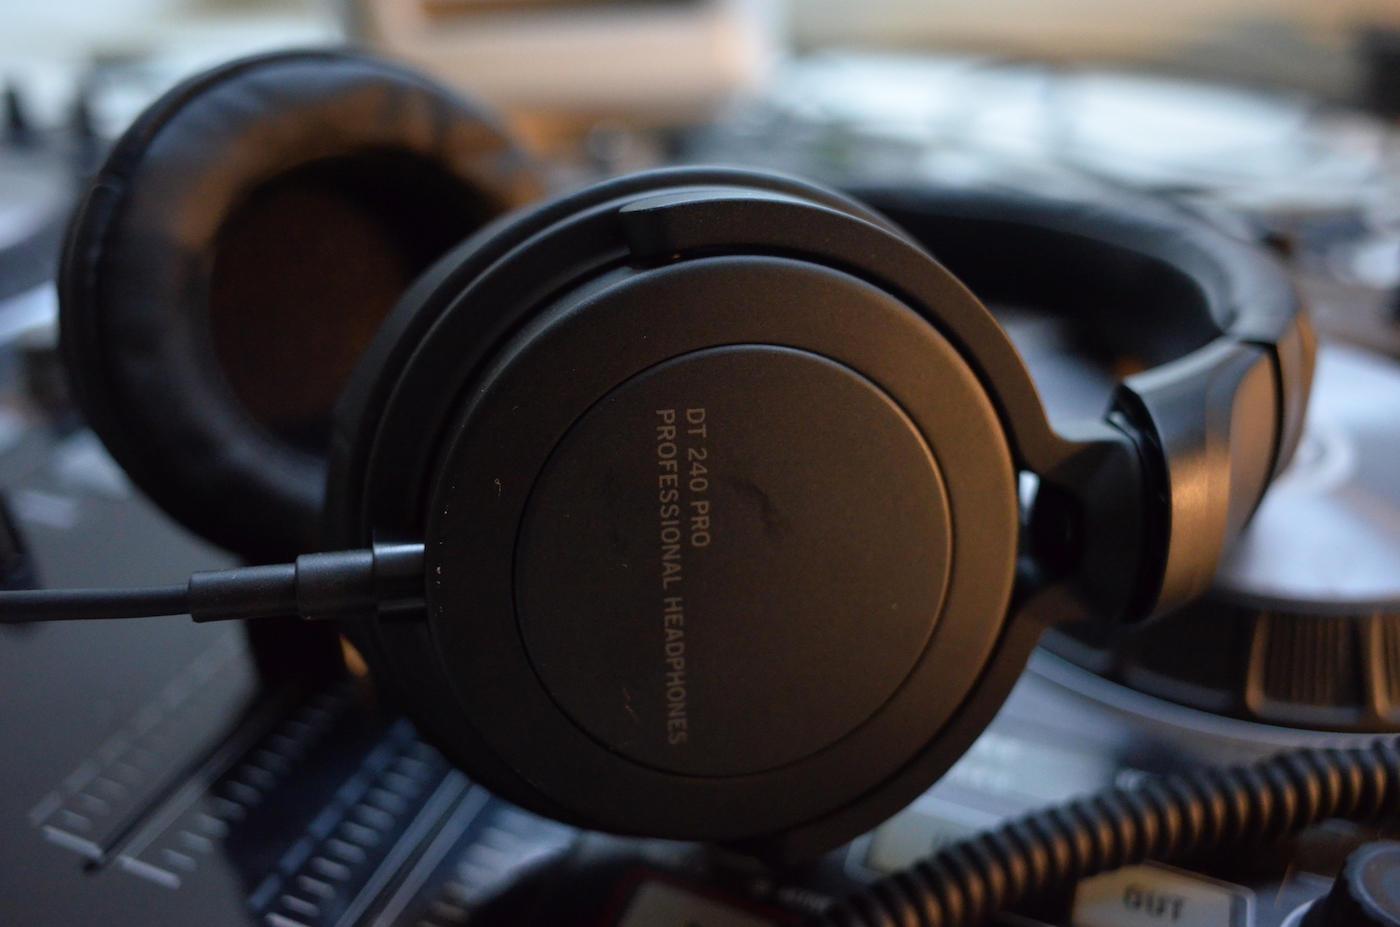 Beyerdynamic DT 240 PRO Review